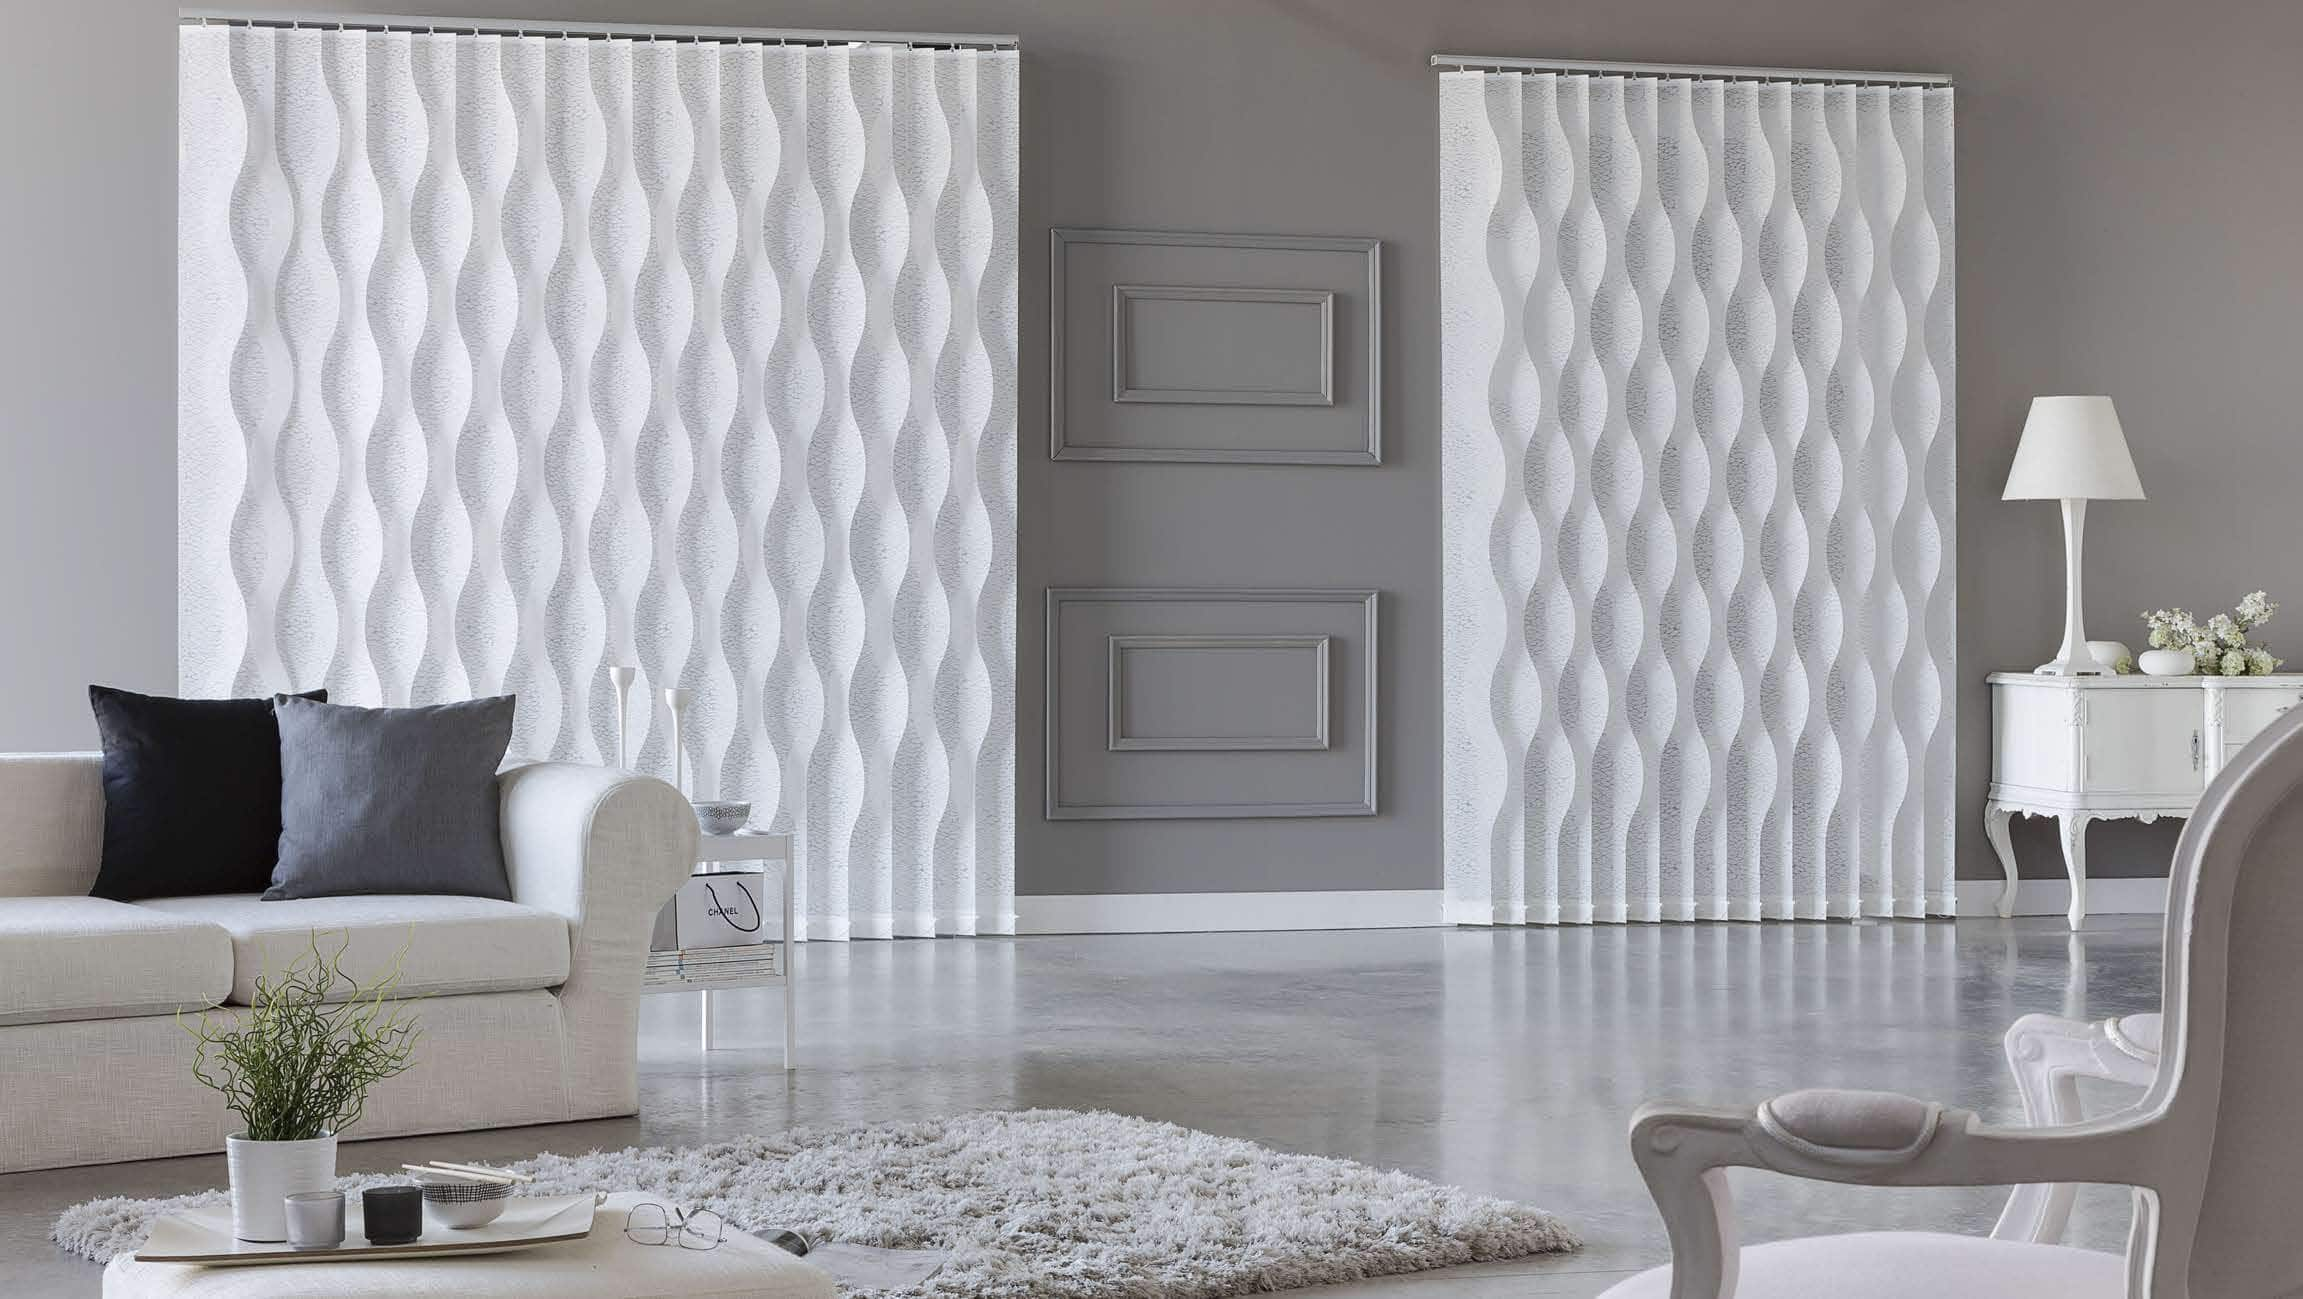 29 cortinas para salon de todas formas y colores estreno for Separar ambientes con cortinas